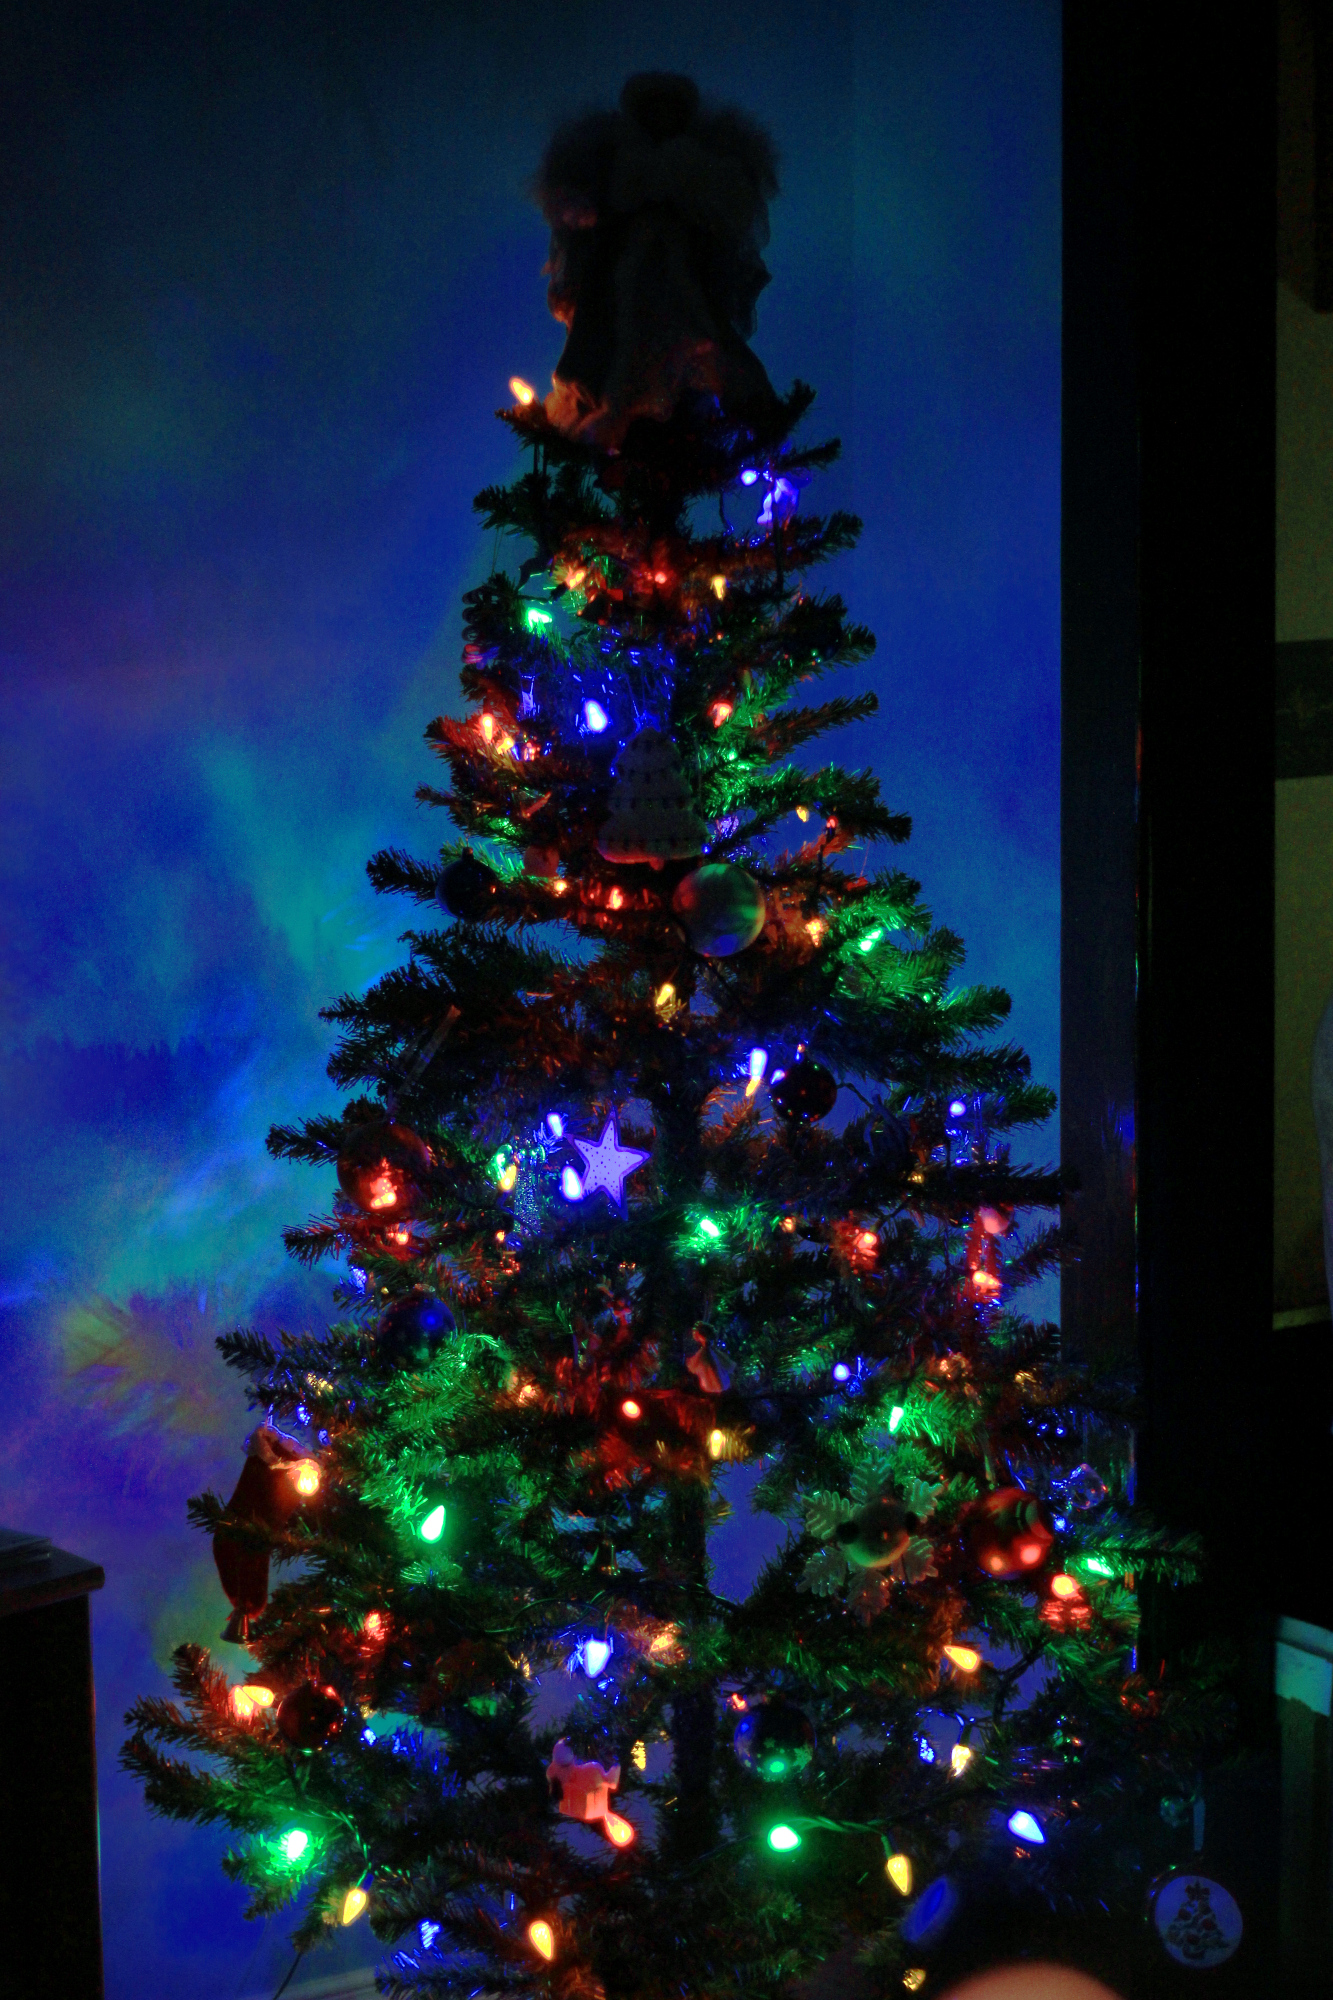 Our Christmas tree, all lit up